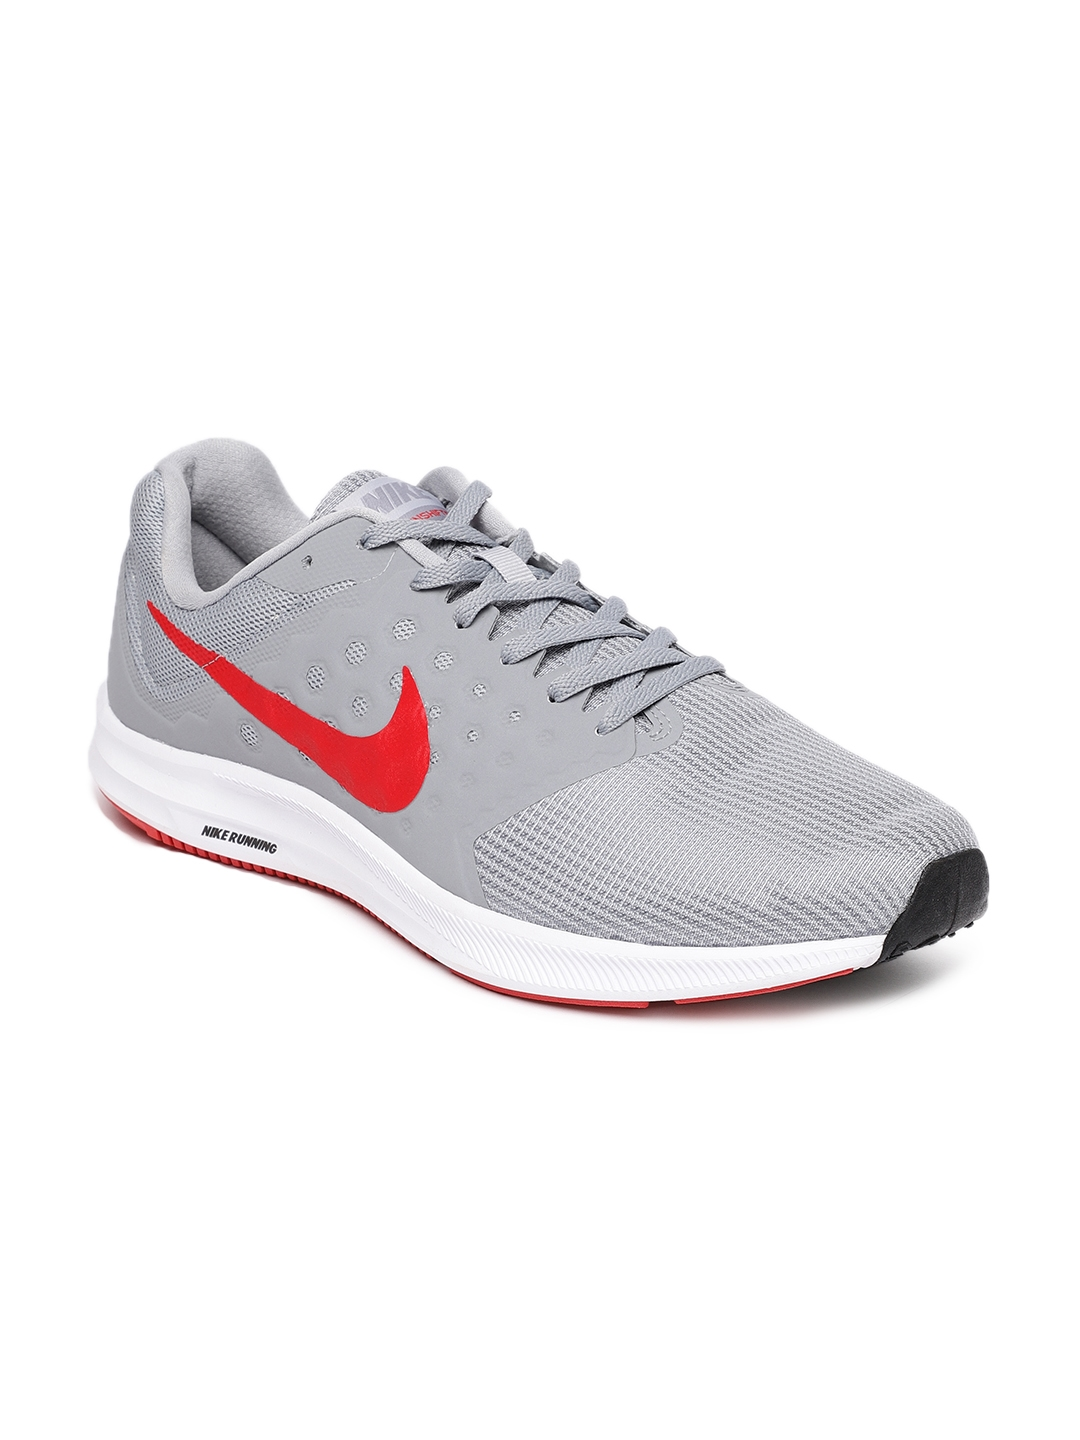 068a85f66844 Buy Nike Men Grey Downshifter 7 Running Shoes - Sports Shoes for Men ...